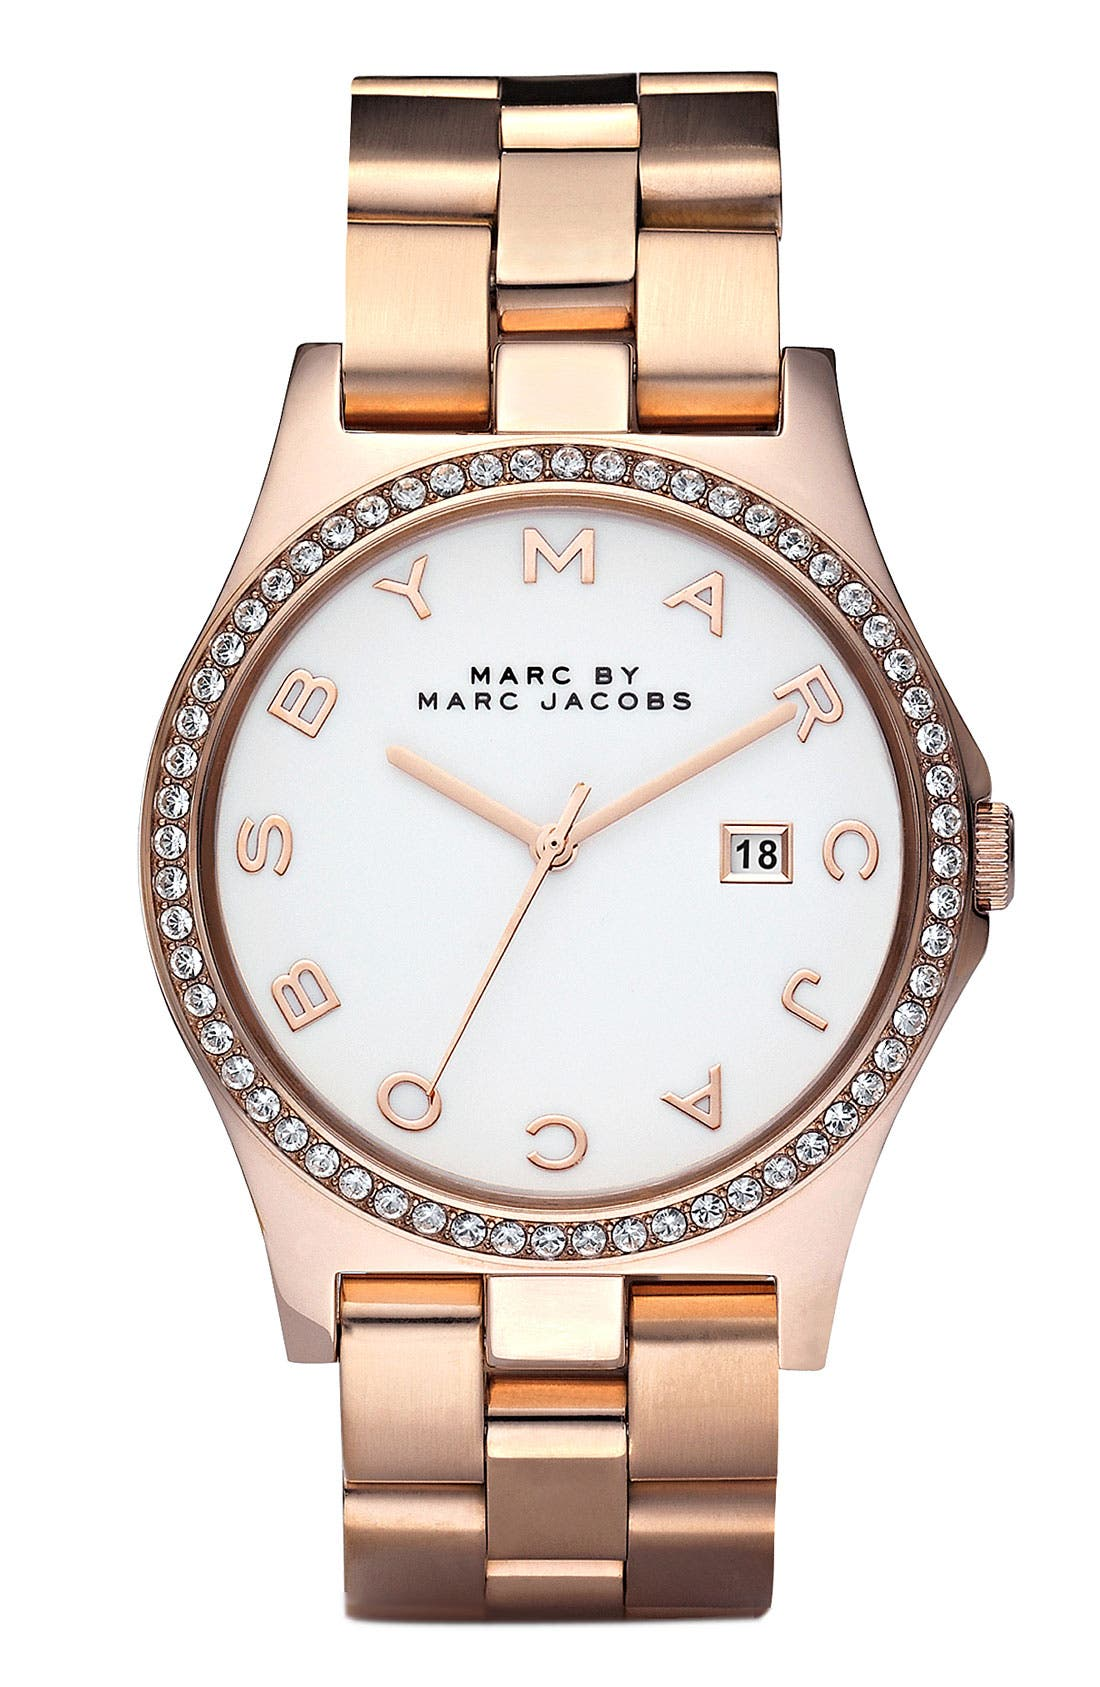 Main Image - MARC JACOBS 'Henry' Rose Gold Plated Watch